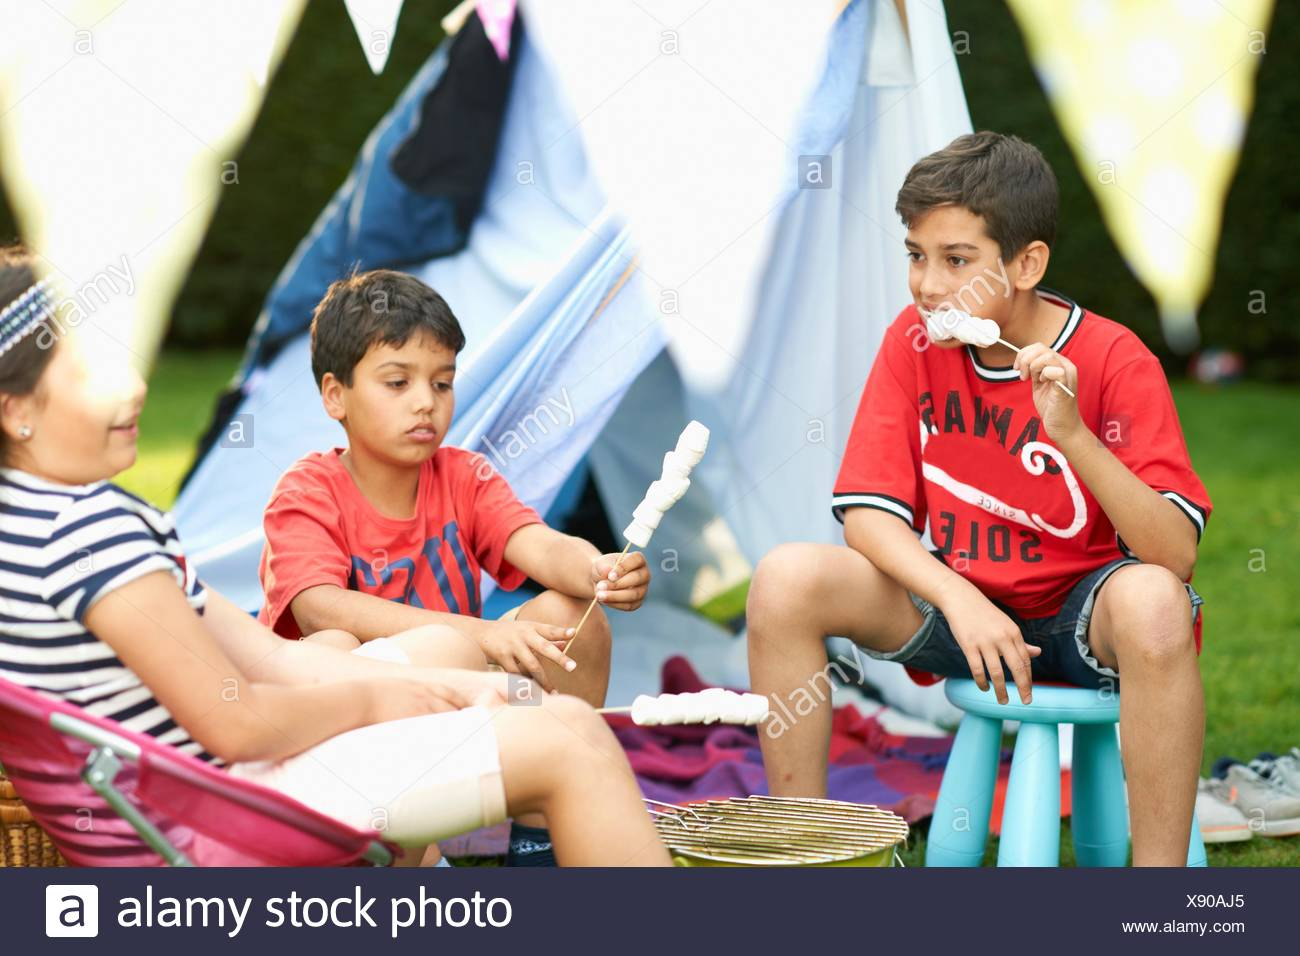 Girl and brothers eating toasted marshmallows in front of homemade tent in garden - Stock Image